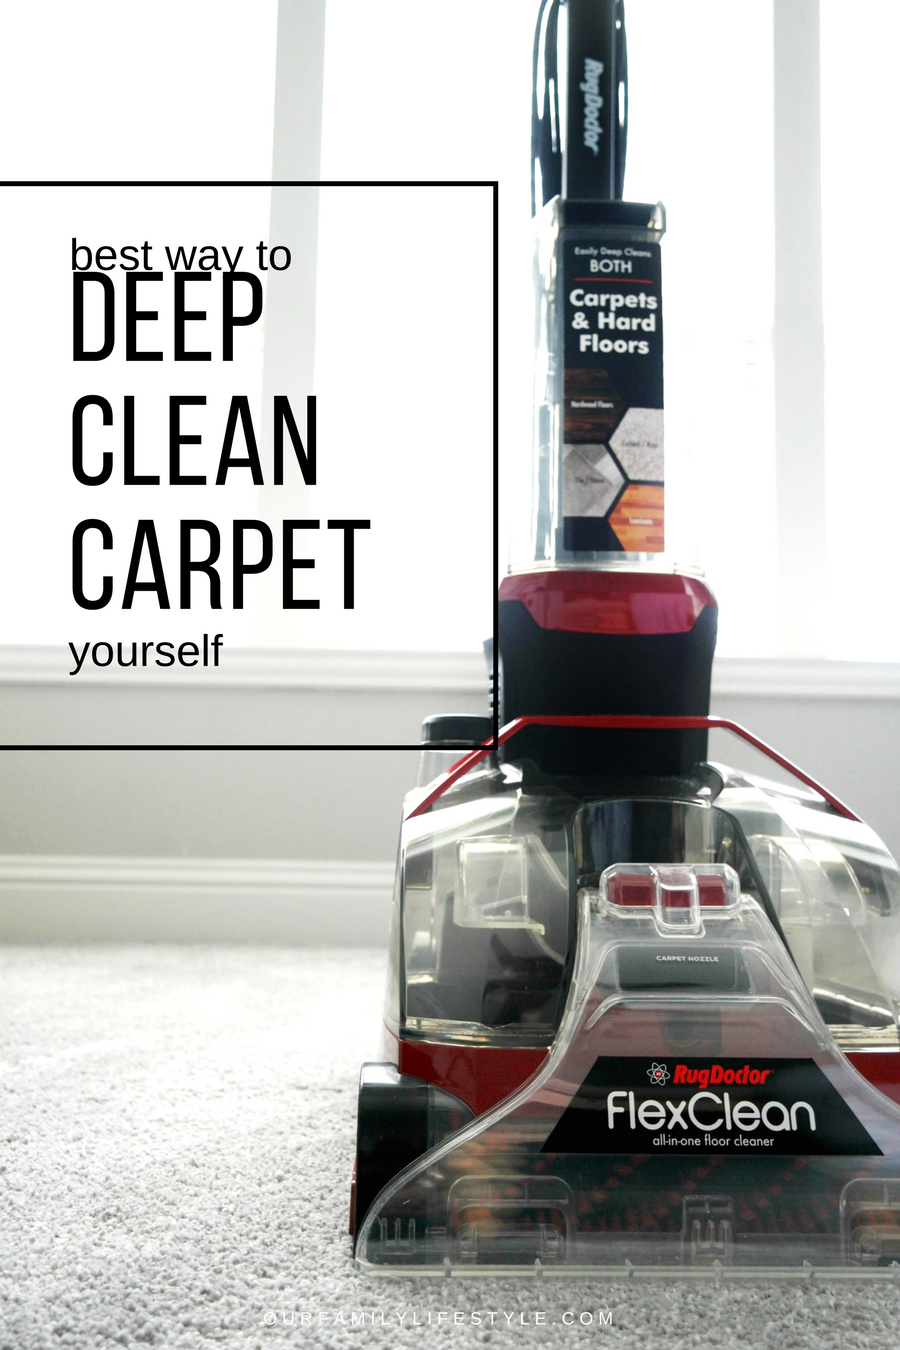 best way to clean carpet best way to clean carpet yourself home the honoroak 30875